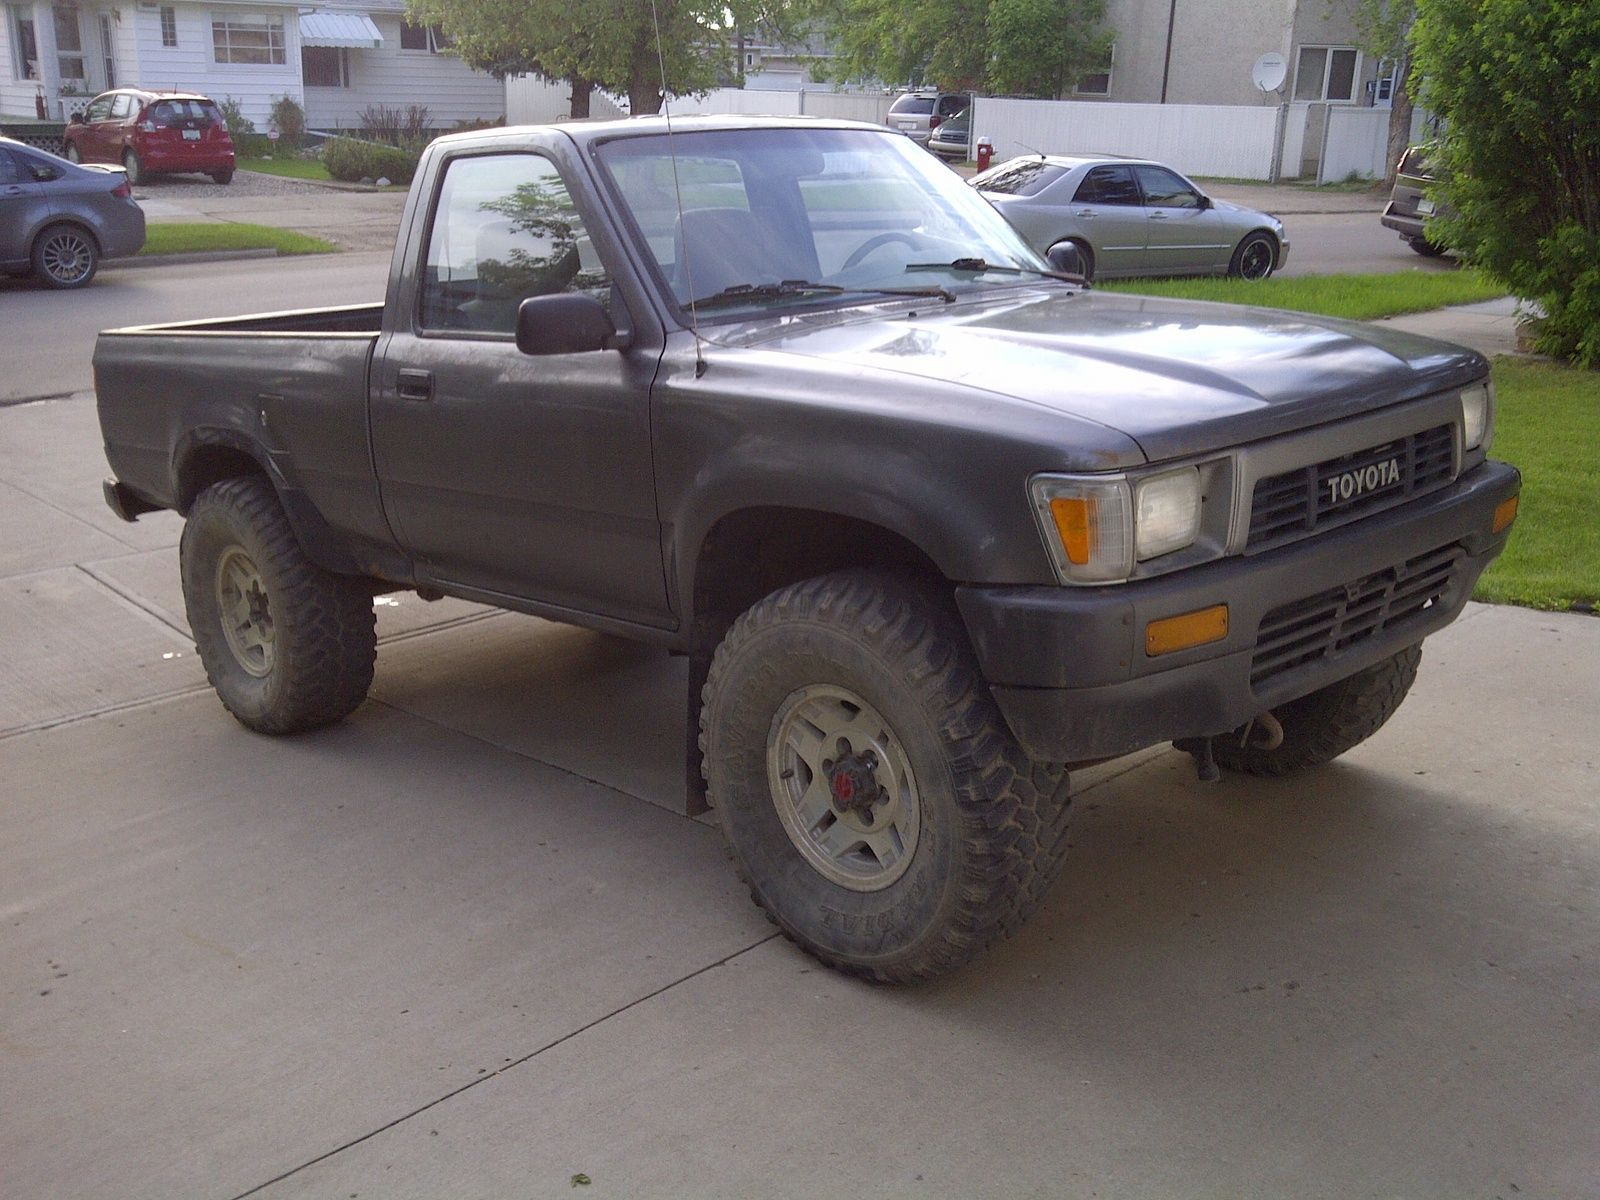 1989 toyota pickup flat black bumper and grille work is a nice touch toyota fun pinterest toyota 4x4 and toyota 4x4